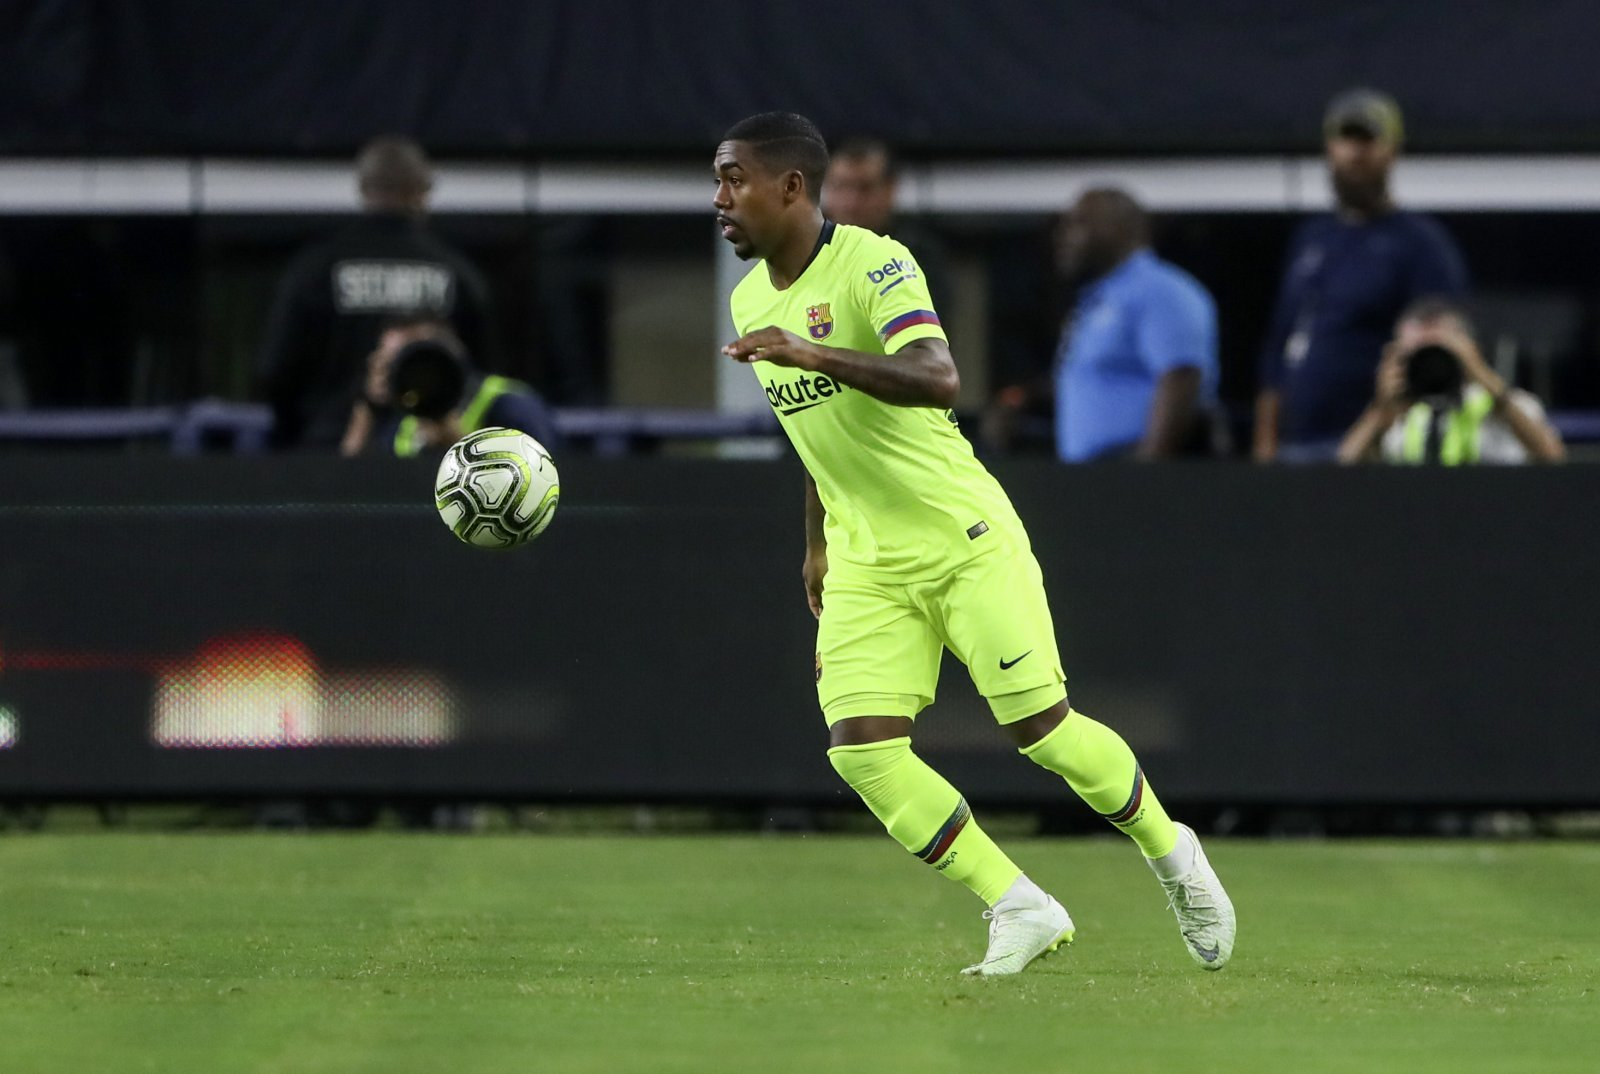 Arsenal eyeing a loan move for unhappy Malcom in January